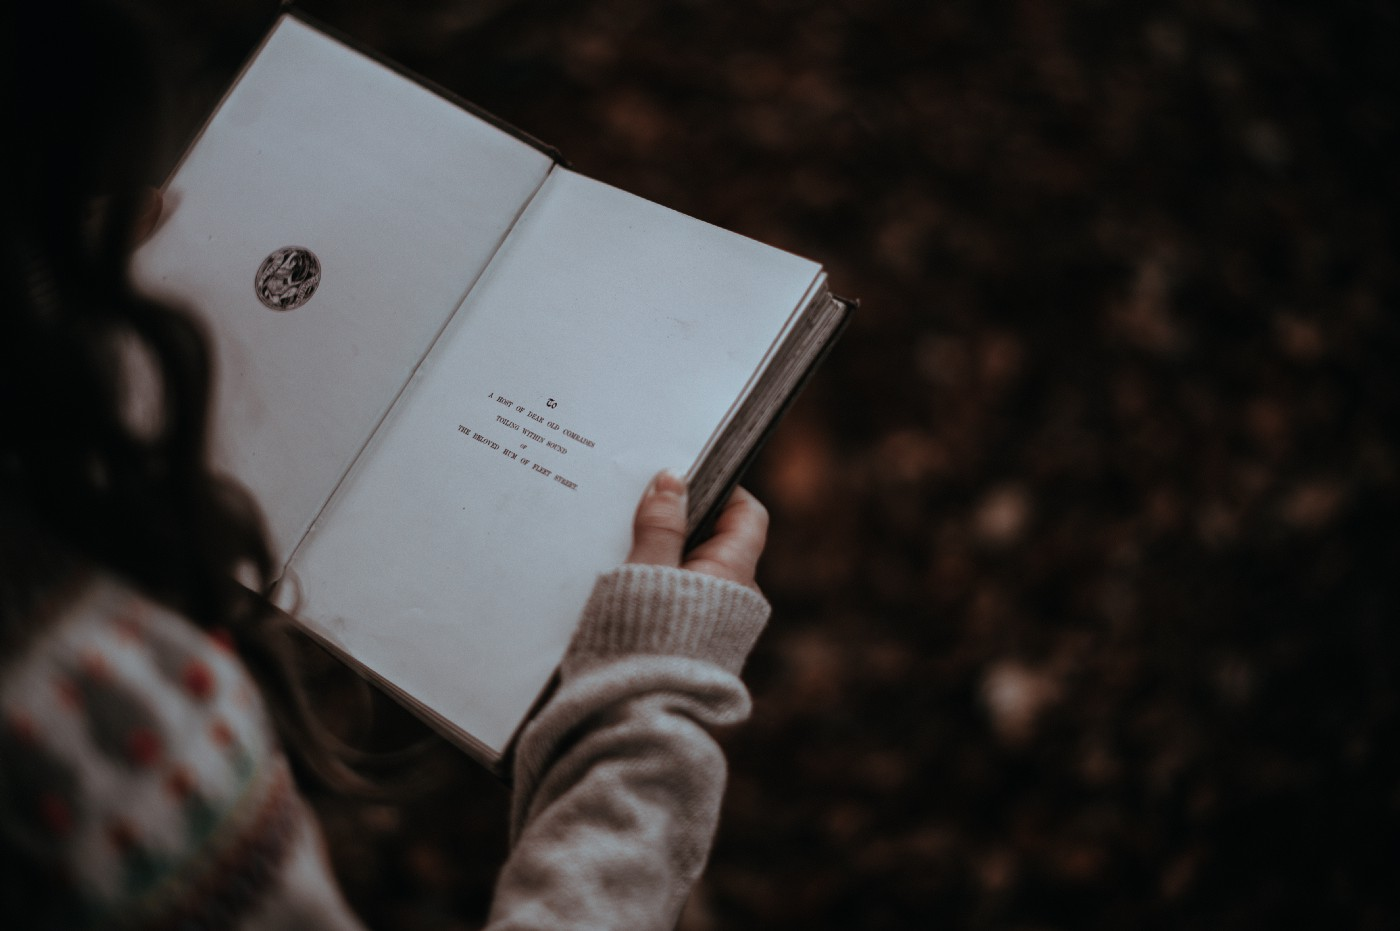 A girl reads the first page of a book.